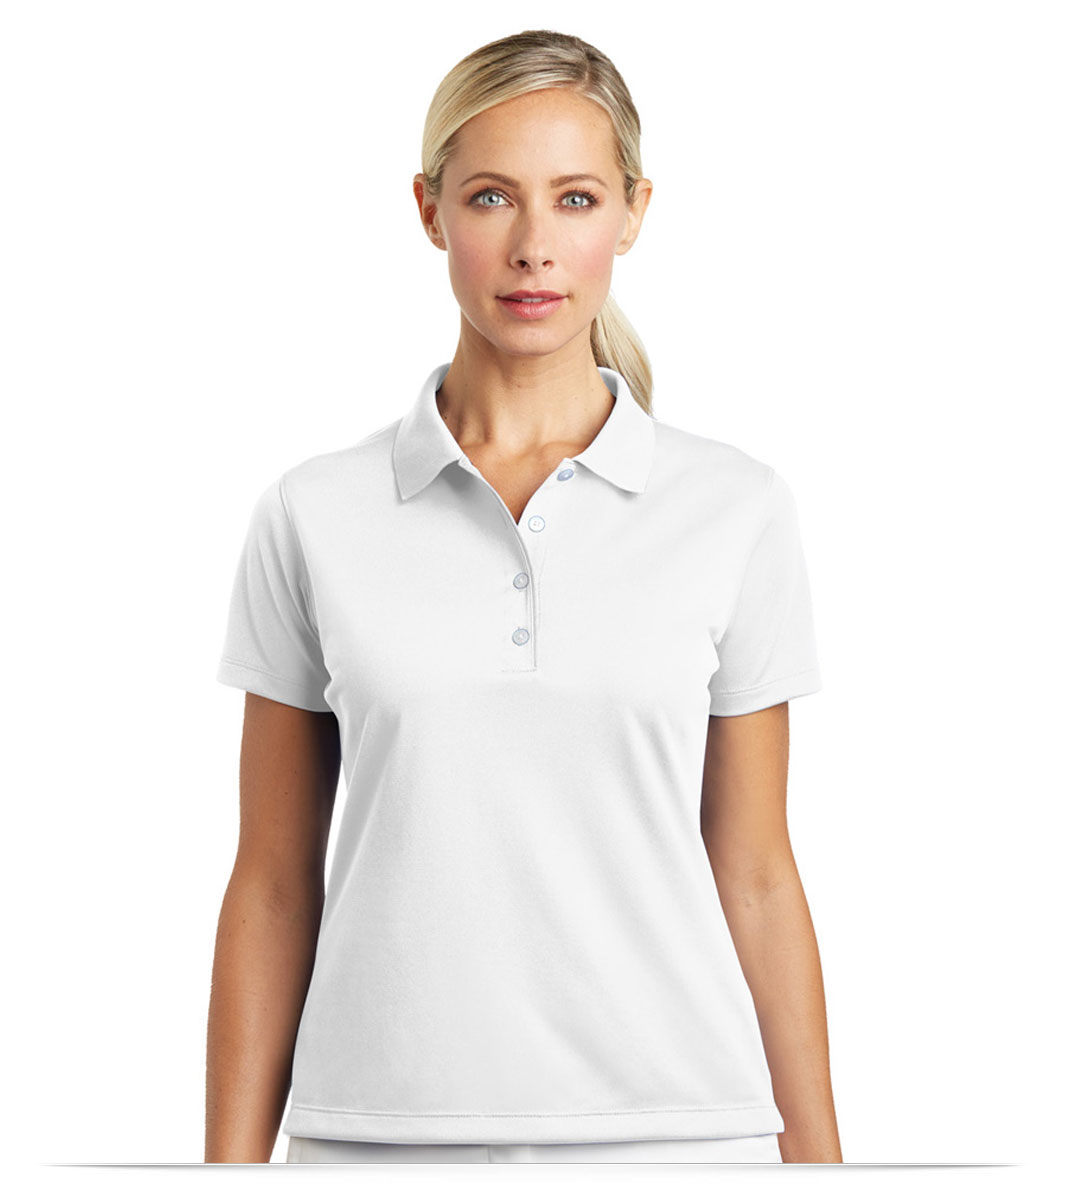 Design embroidered women 39 s nike golf shirt online at for Customize nike shirts online